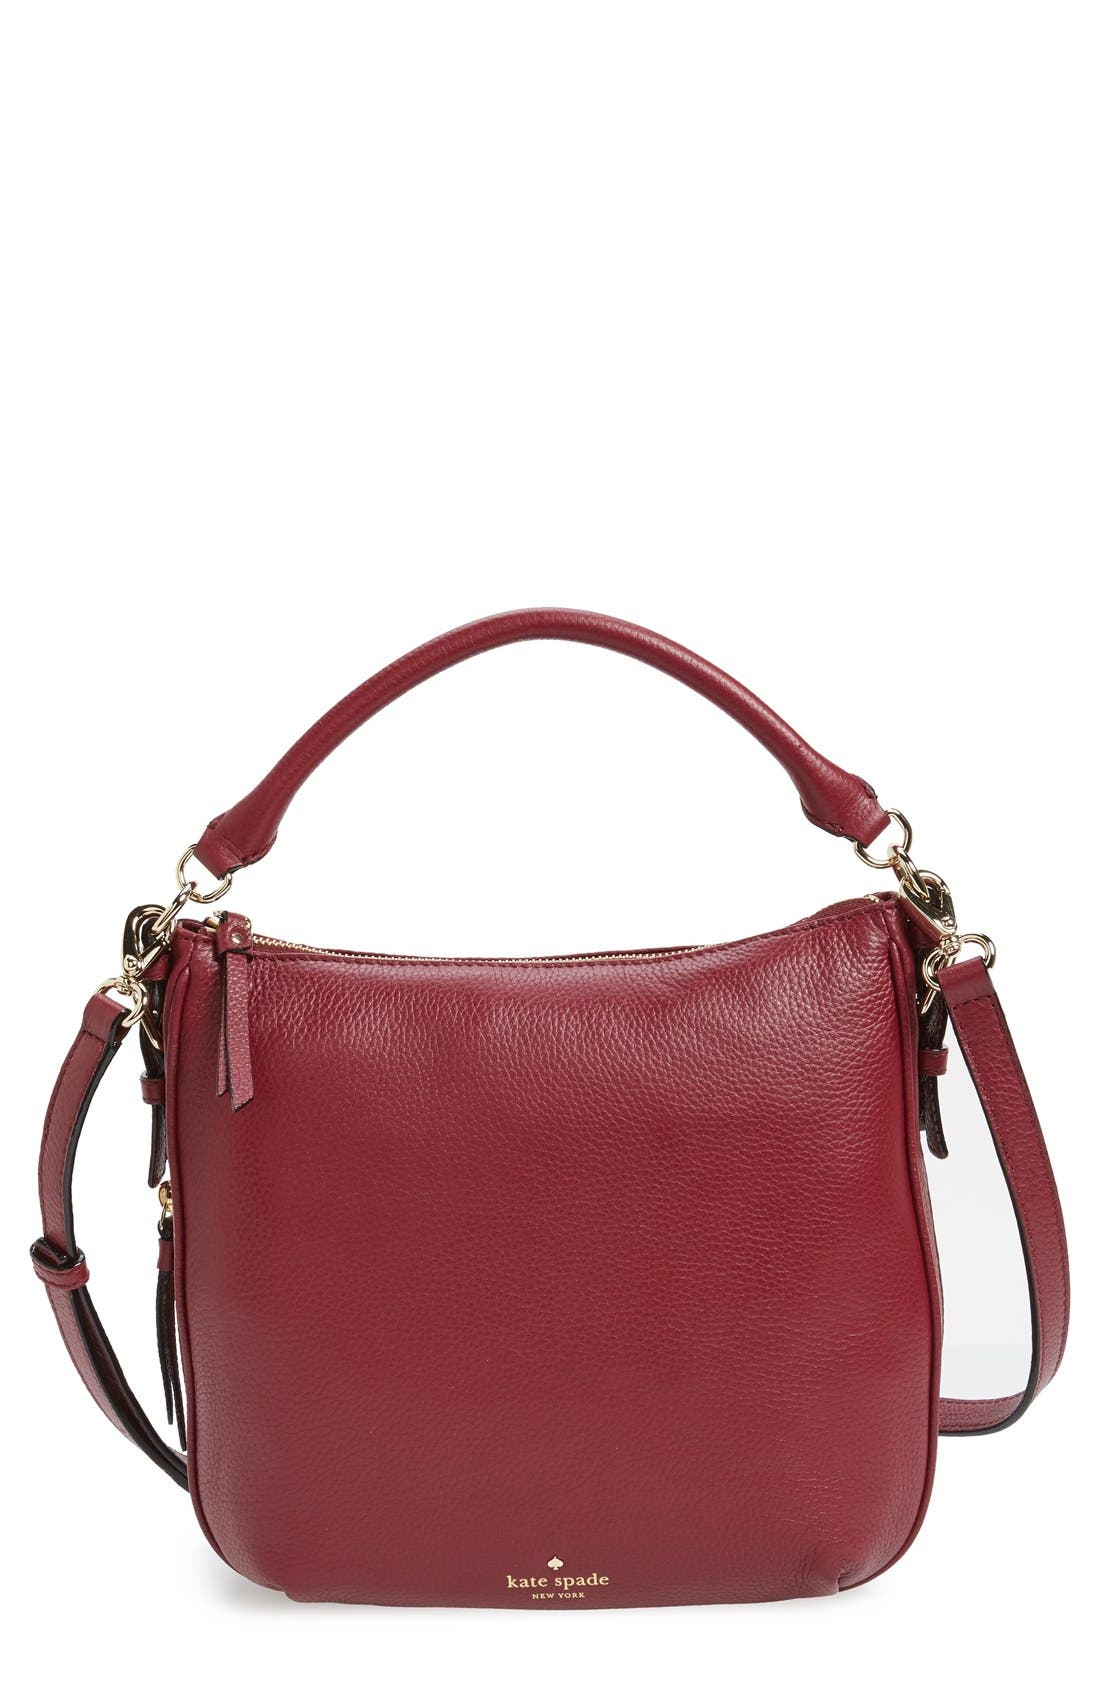 Alternate Image 1 Selected - kate spade new york 'cobble hill - small ella' leather satchel